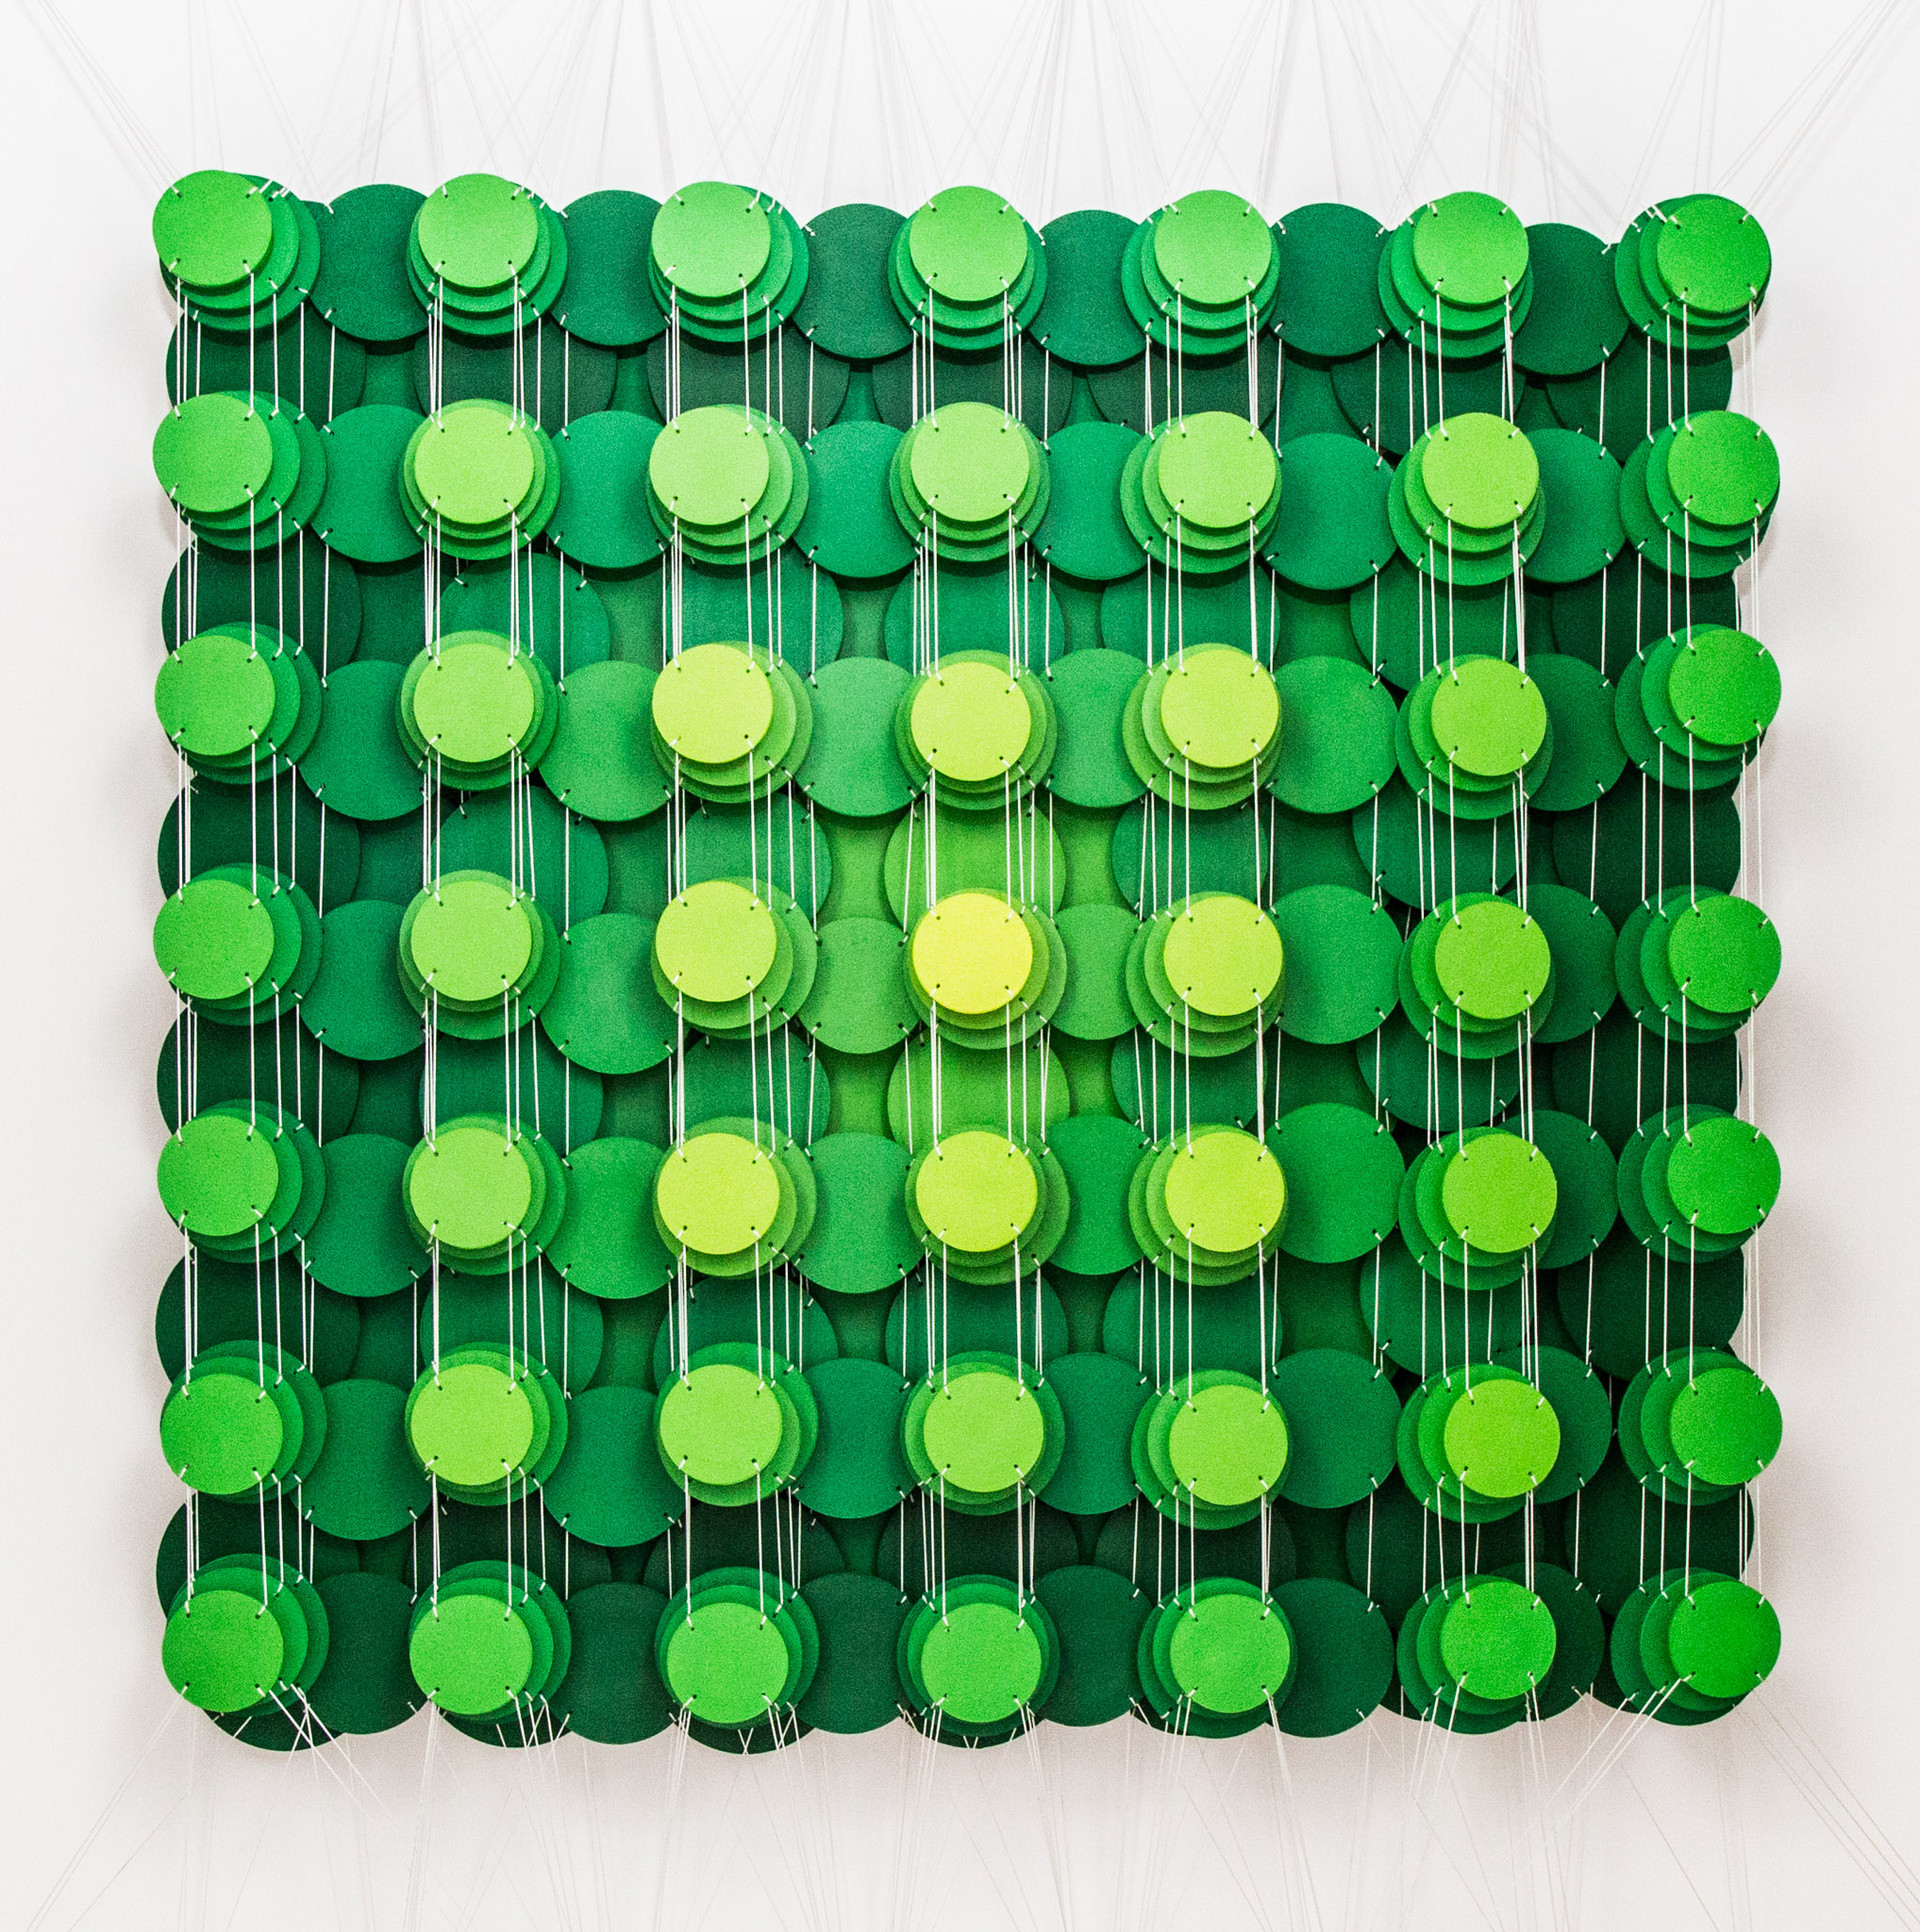 Cecilia Glazman Green popps 2017 Papel y madera pintado a mano e hilos (Hand painted paper and wood, thread) 100 x 100 cm.